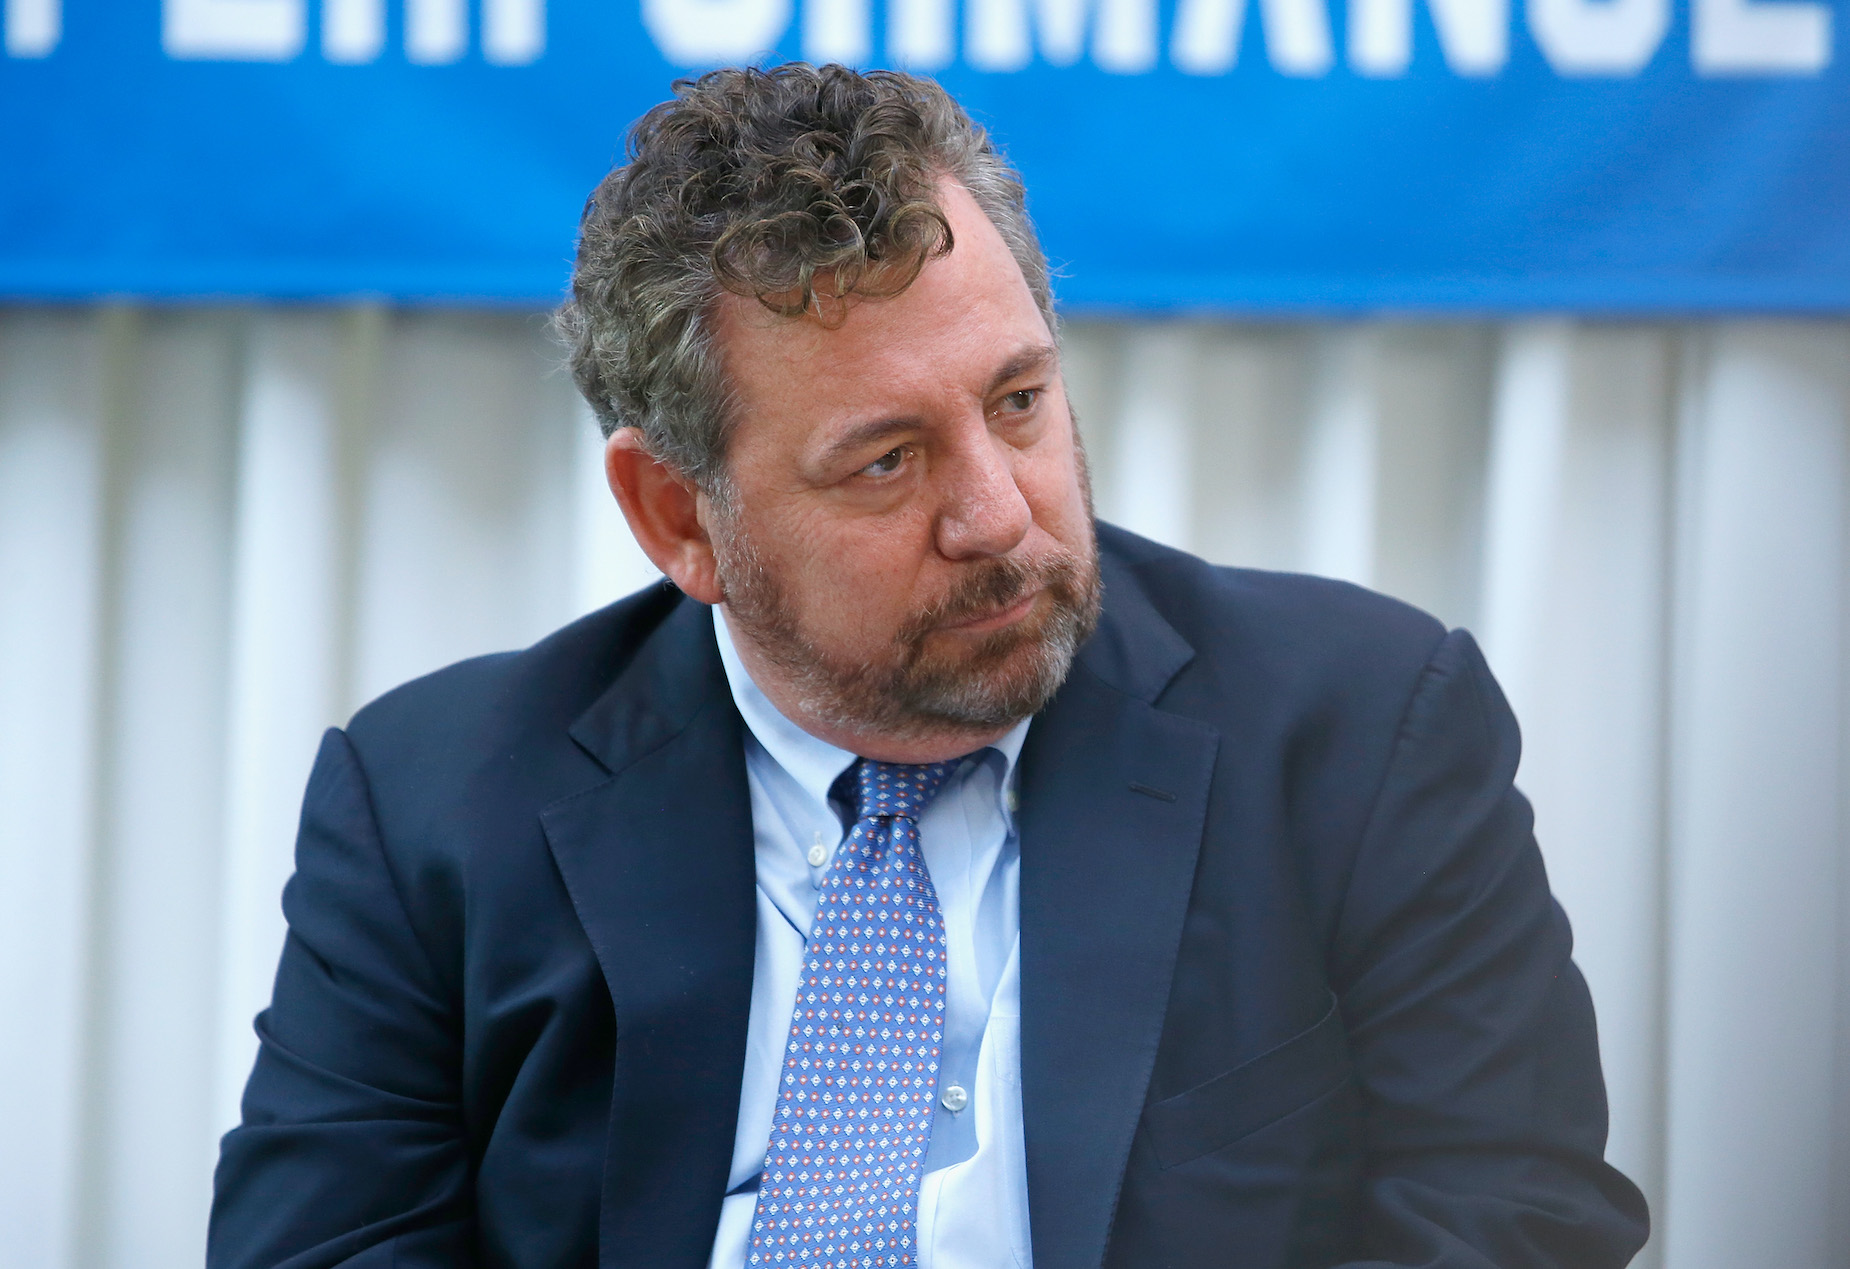 With His New York Knicks Finally on the Right Track, James Dolan Just Ruined the New York Rangers' Rebuilding Efforts